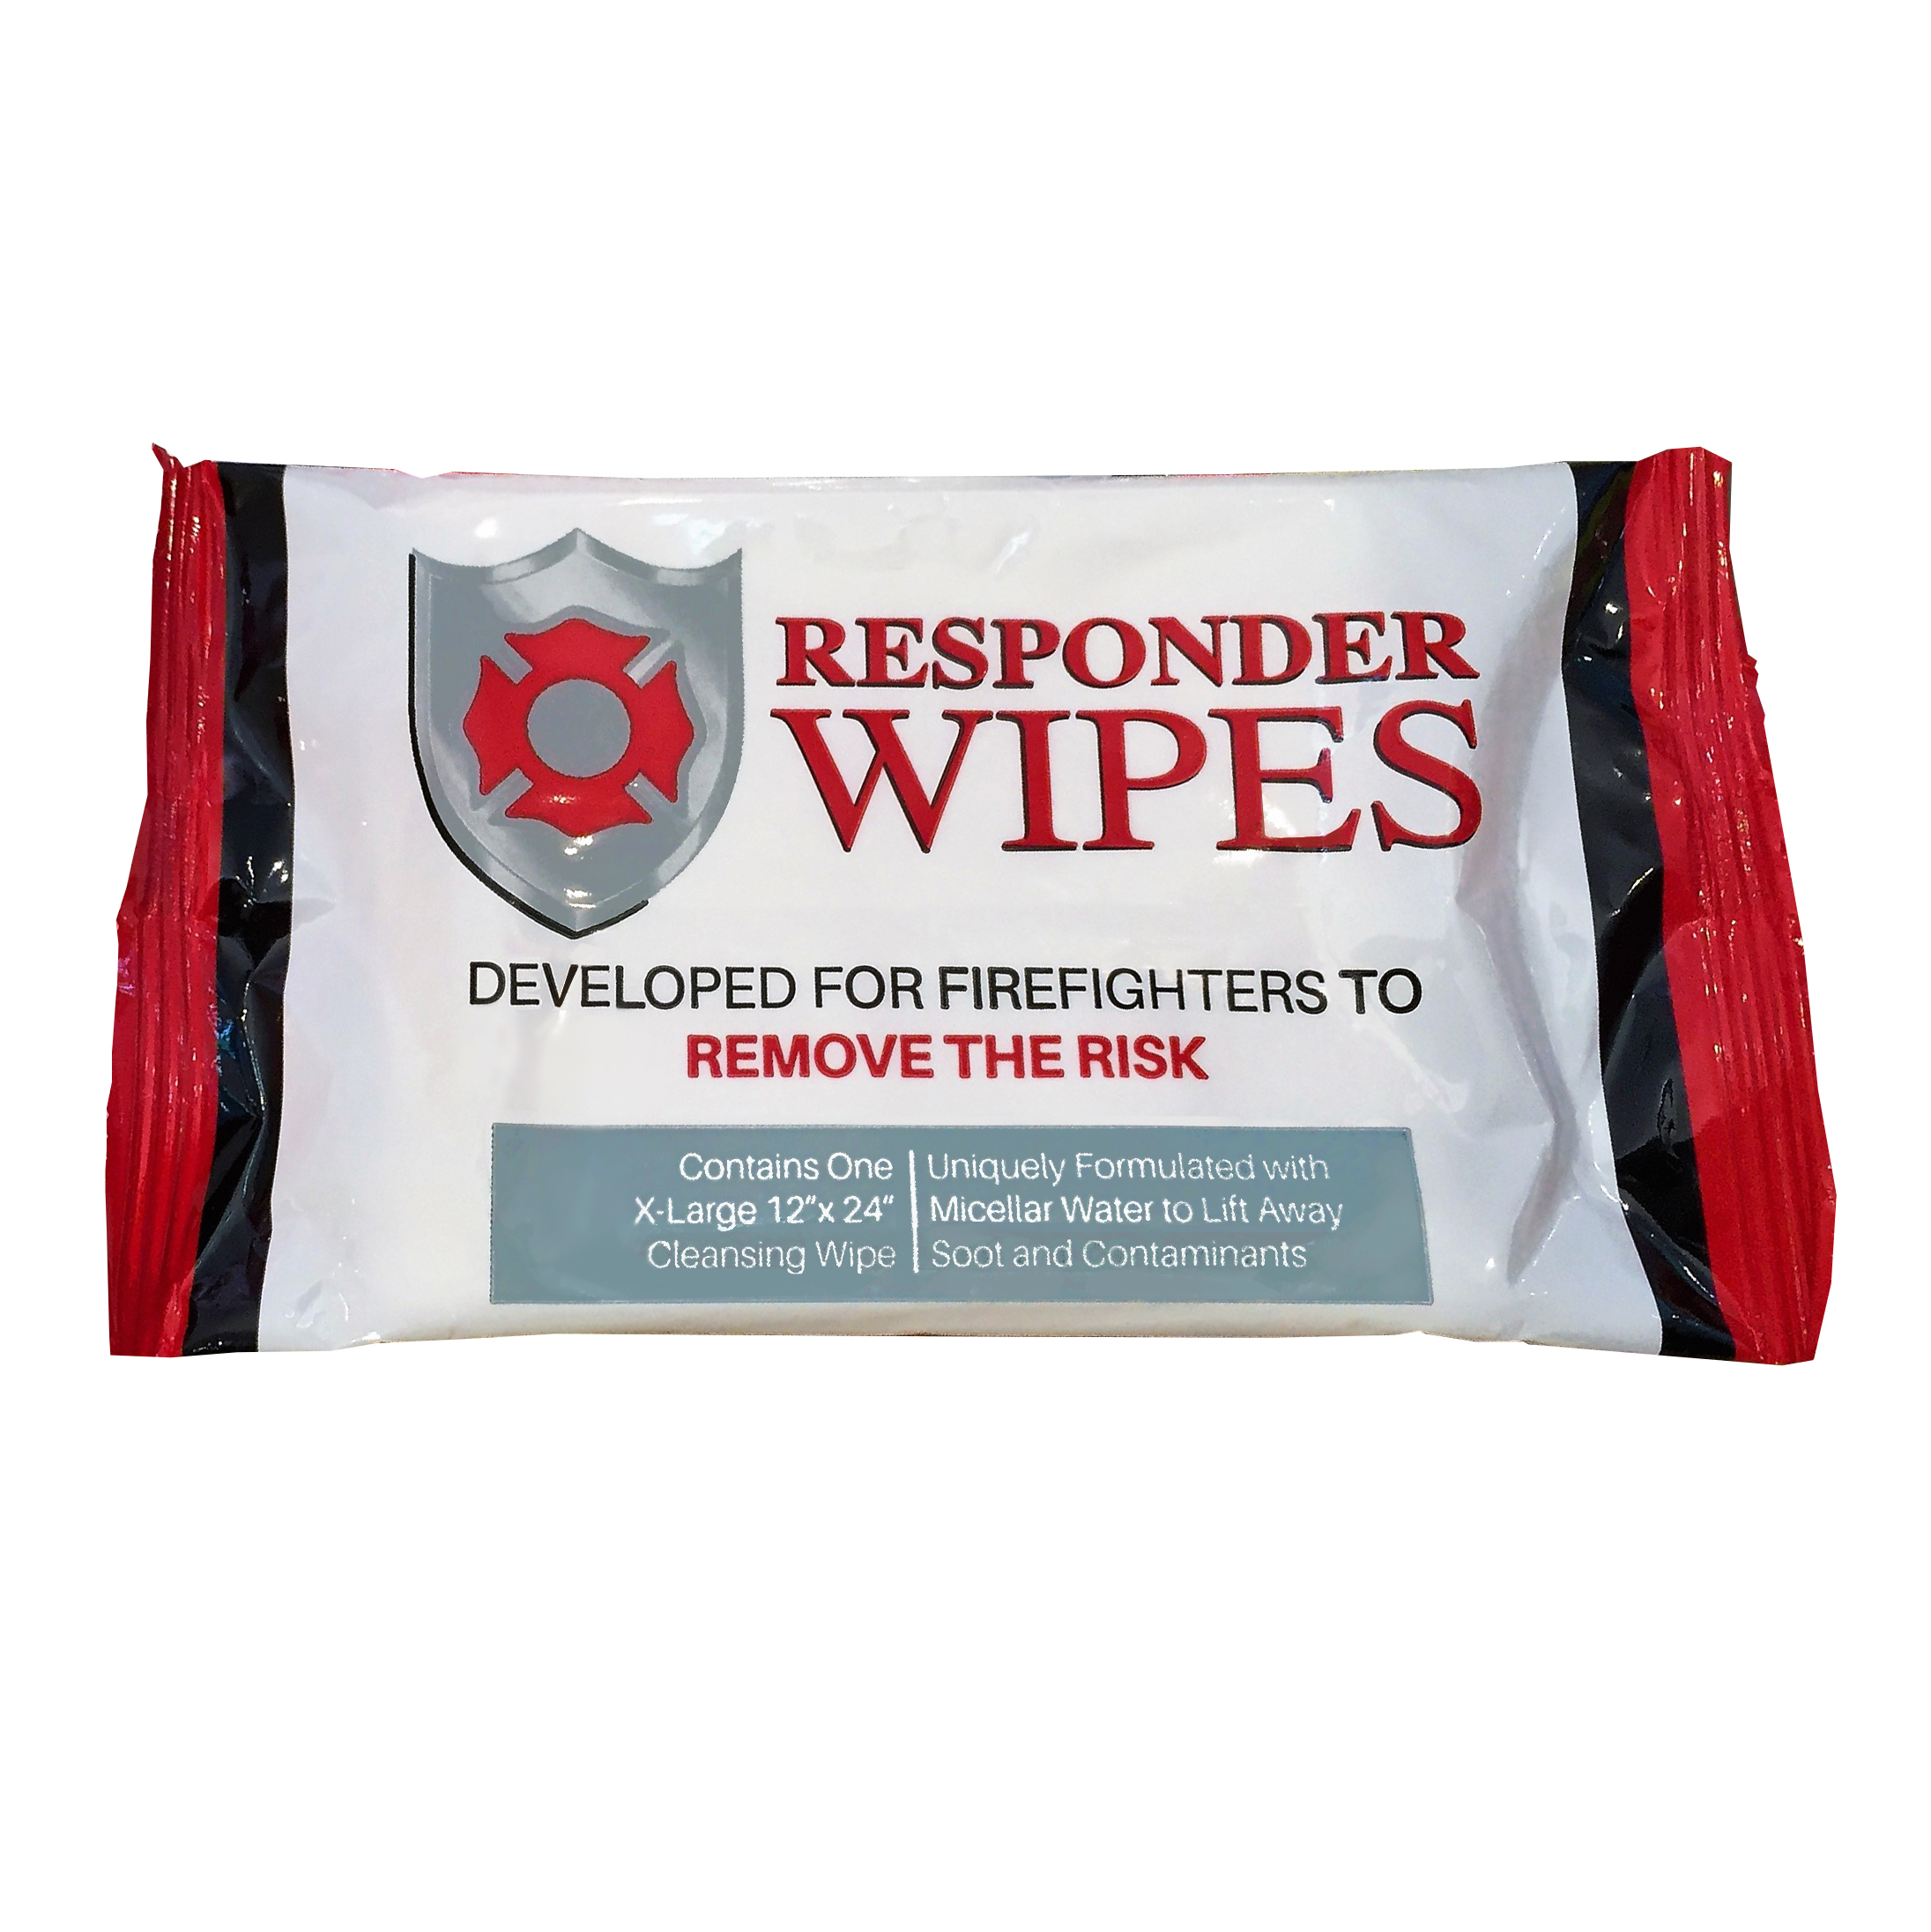 Shop Firefighter Health and Wellness at DQE